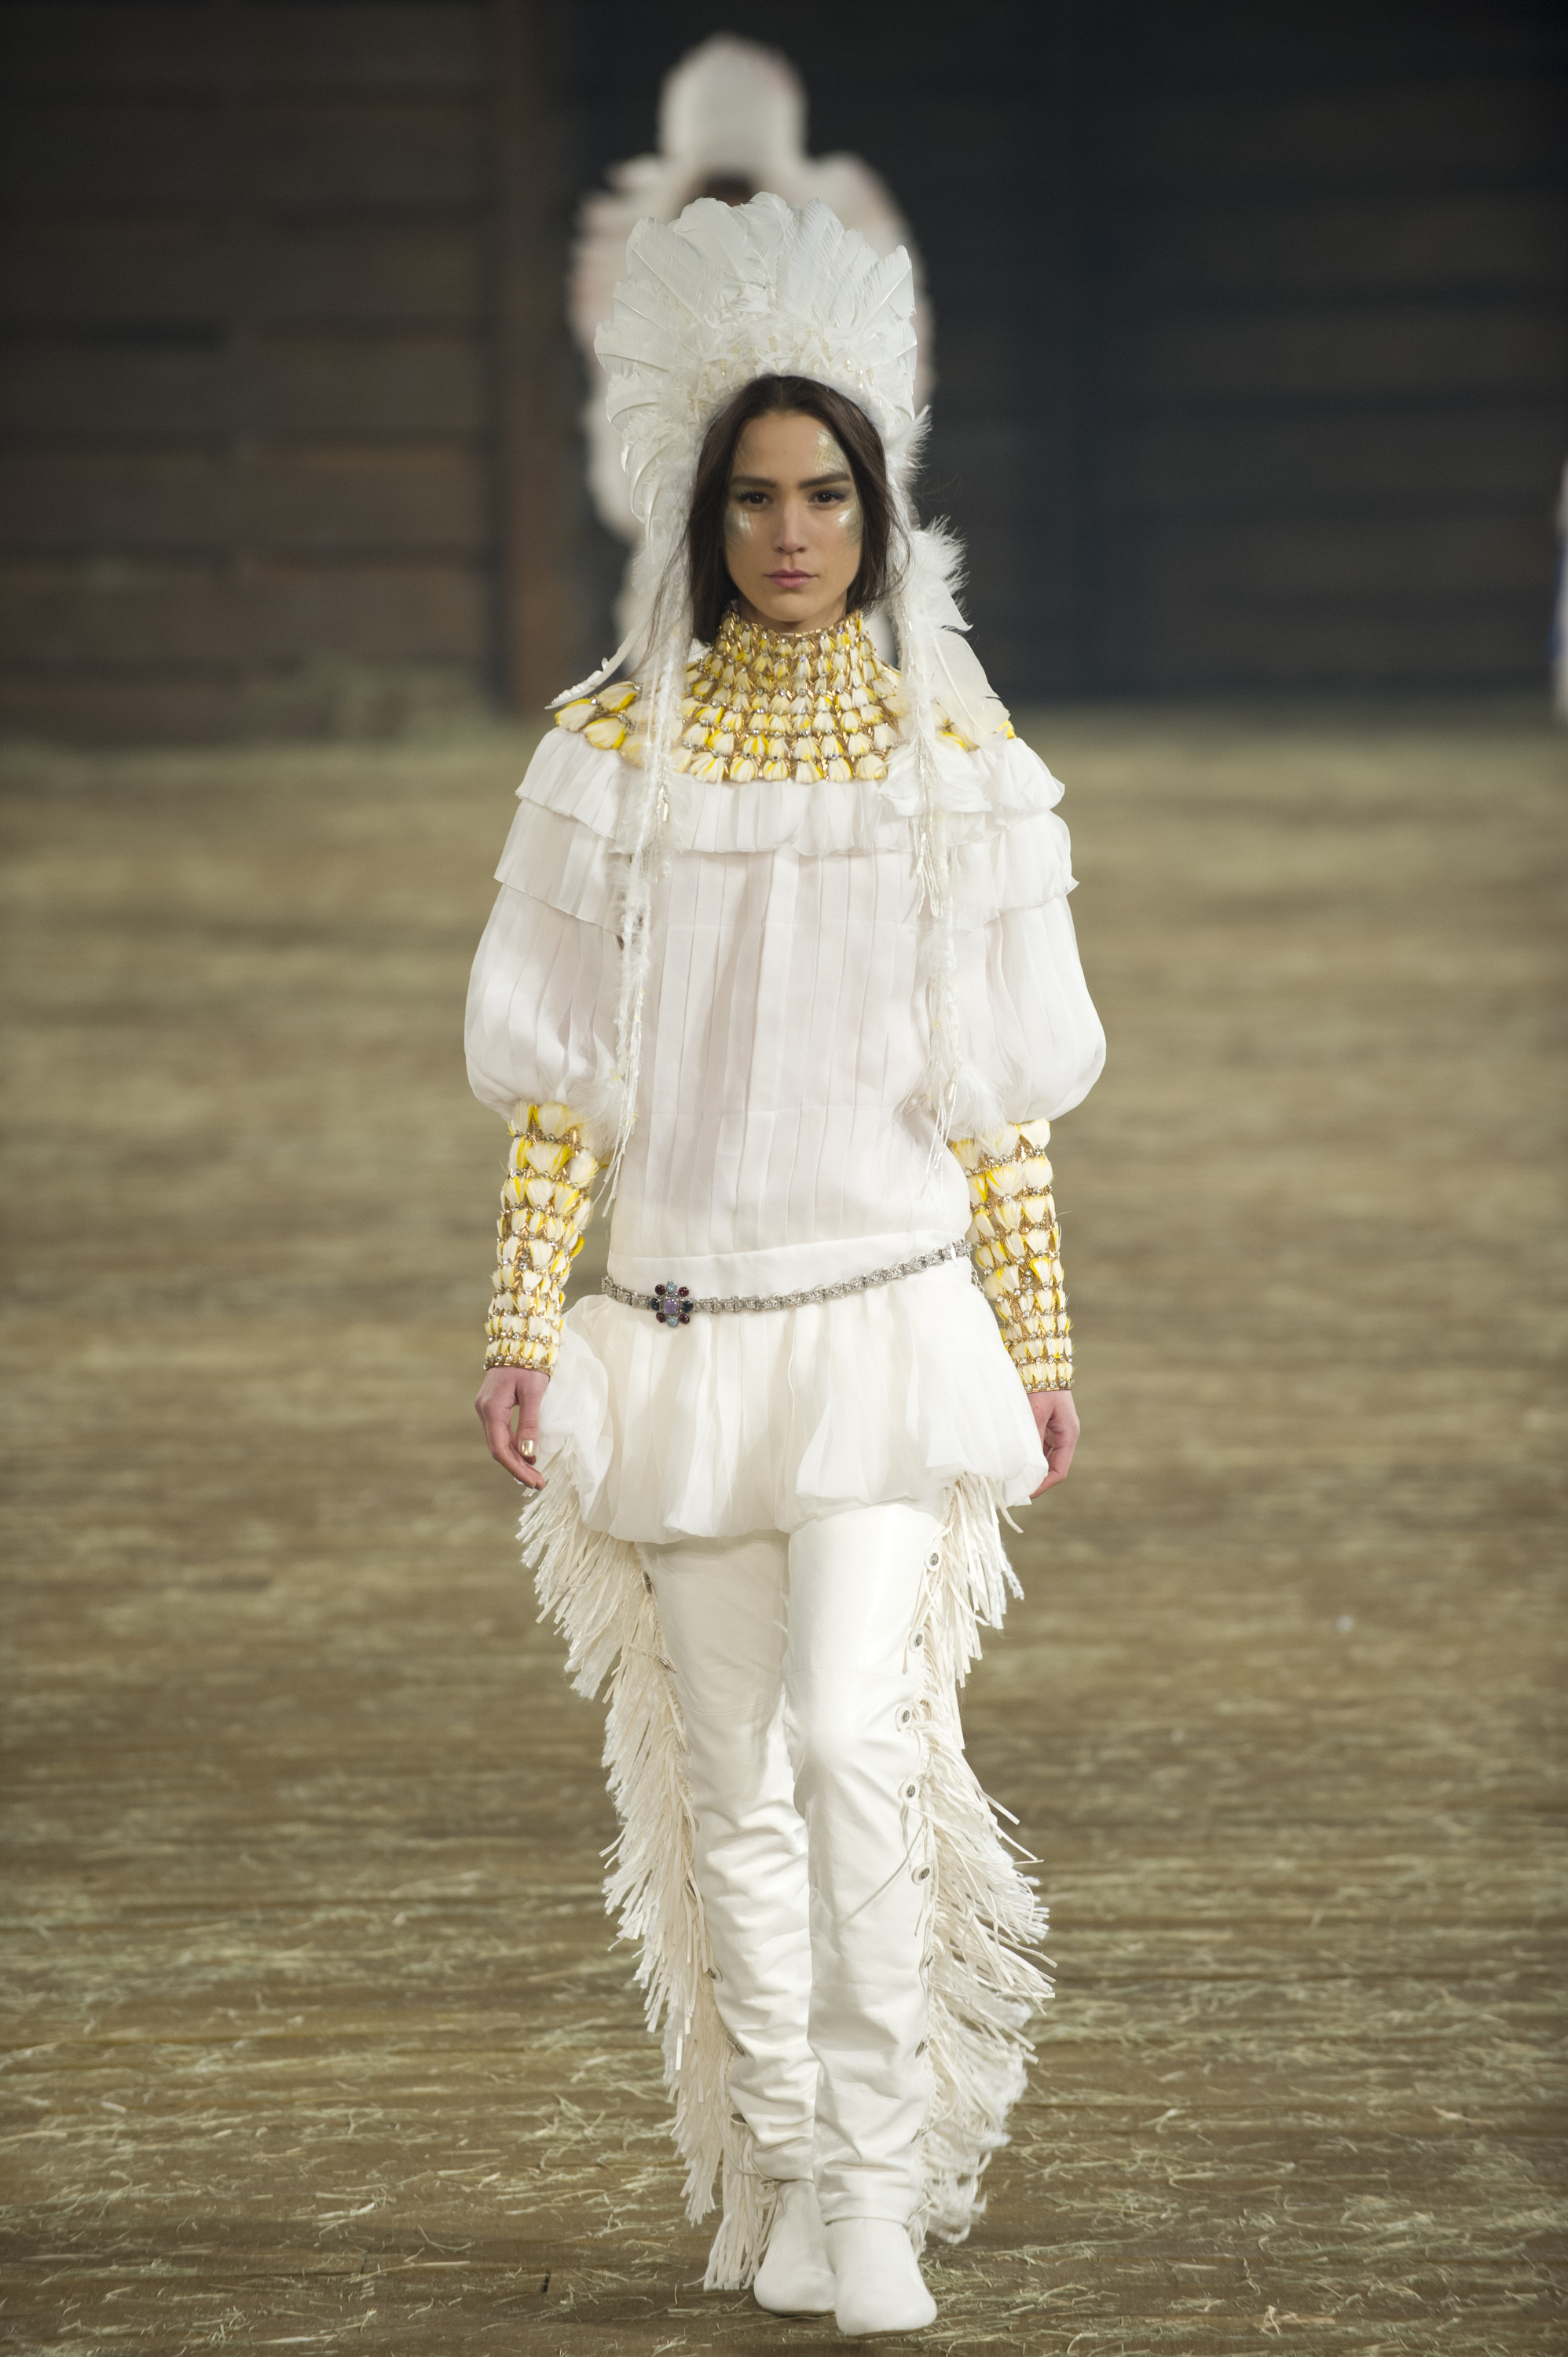 The Reclaiming Of Native American Fashion